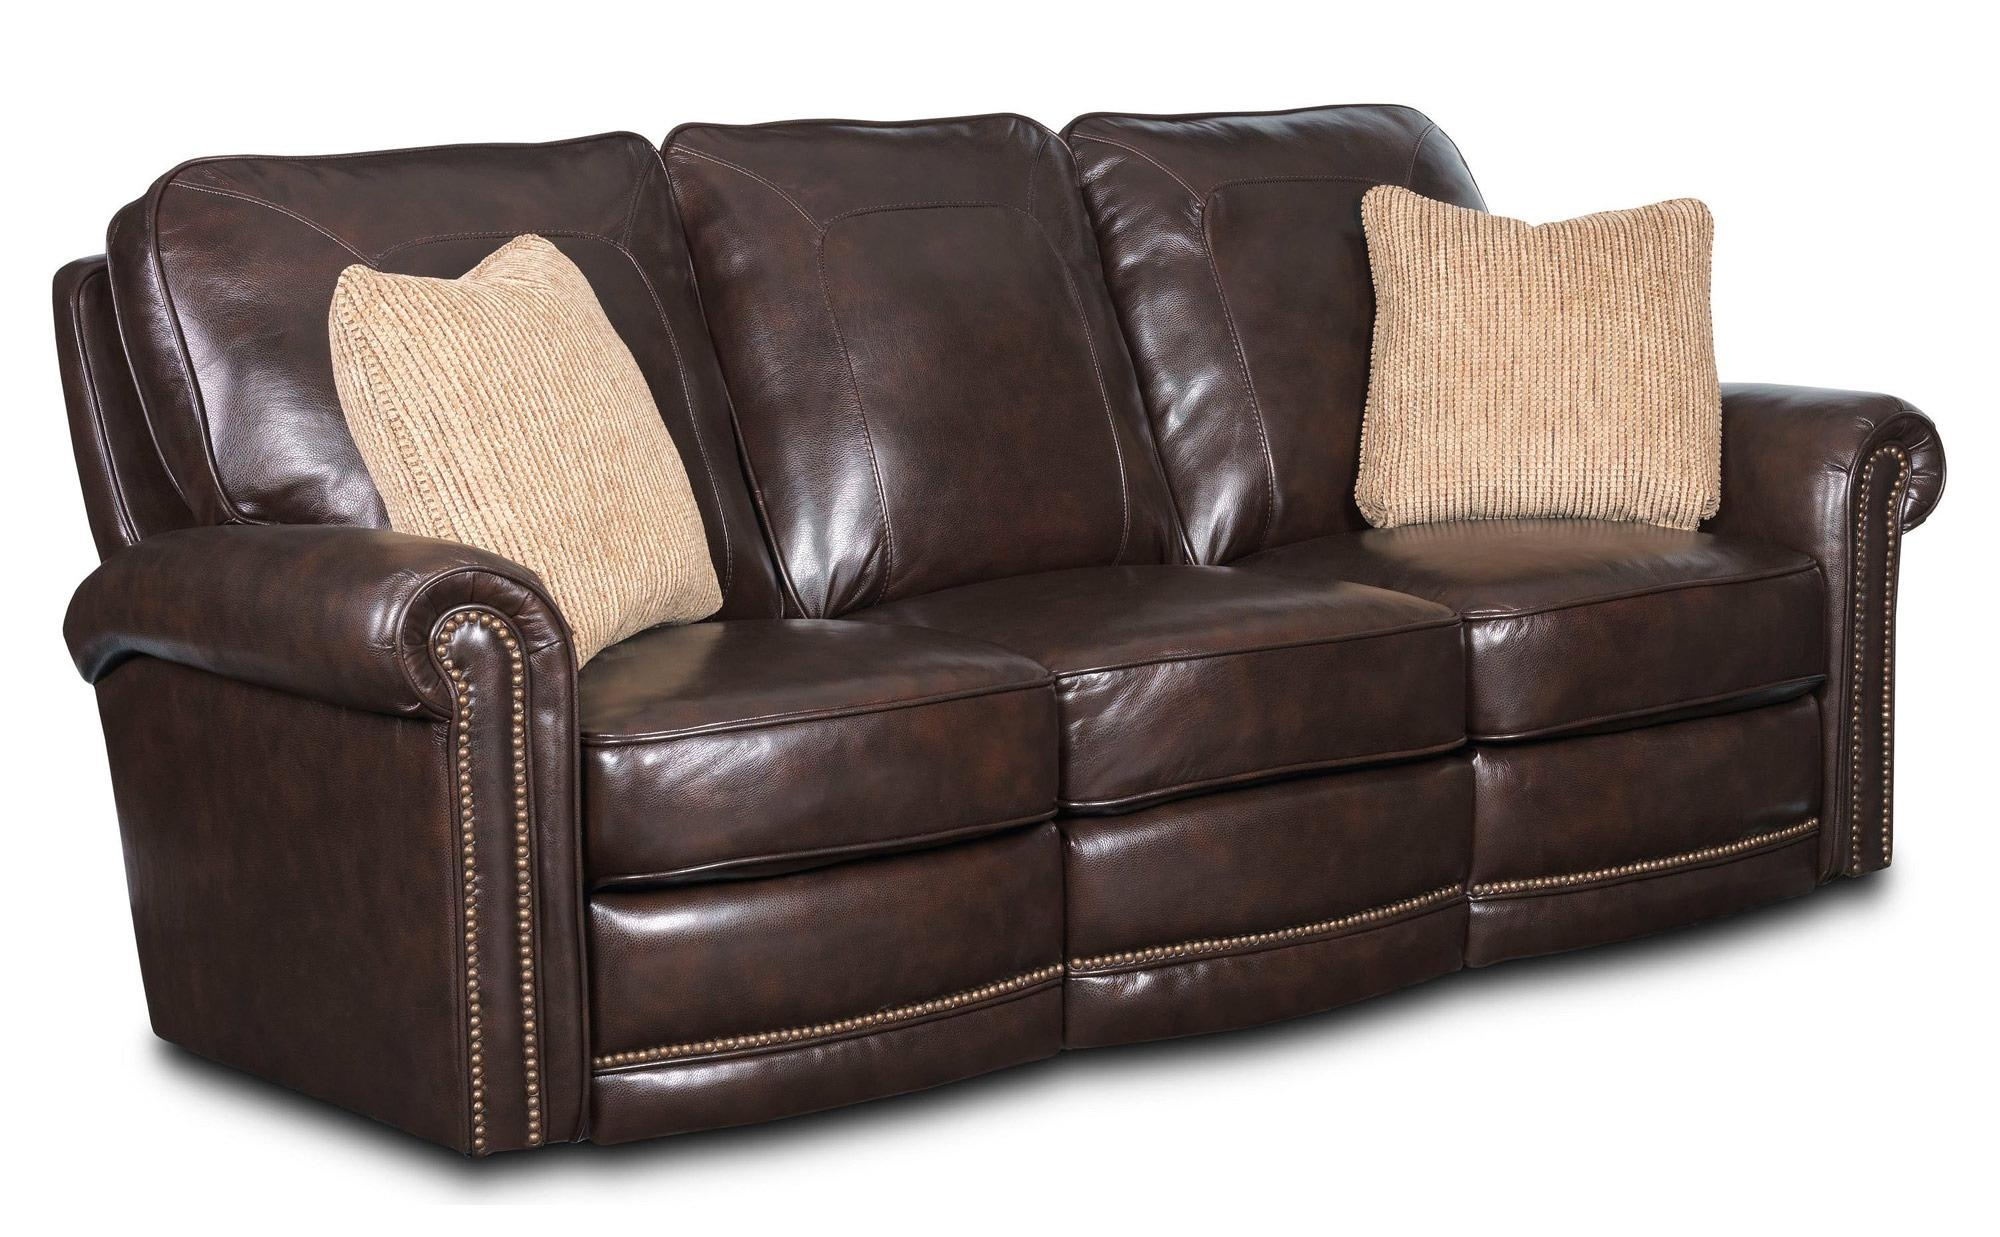 Broyhill Hamilton Leather Sofa | Sofas Decoration Intended For Broyhill Reclining Sofas (View 15 of 20)